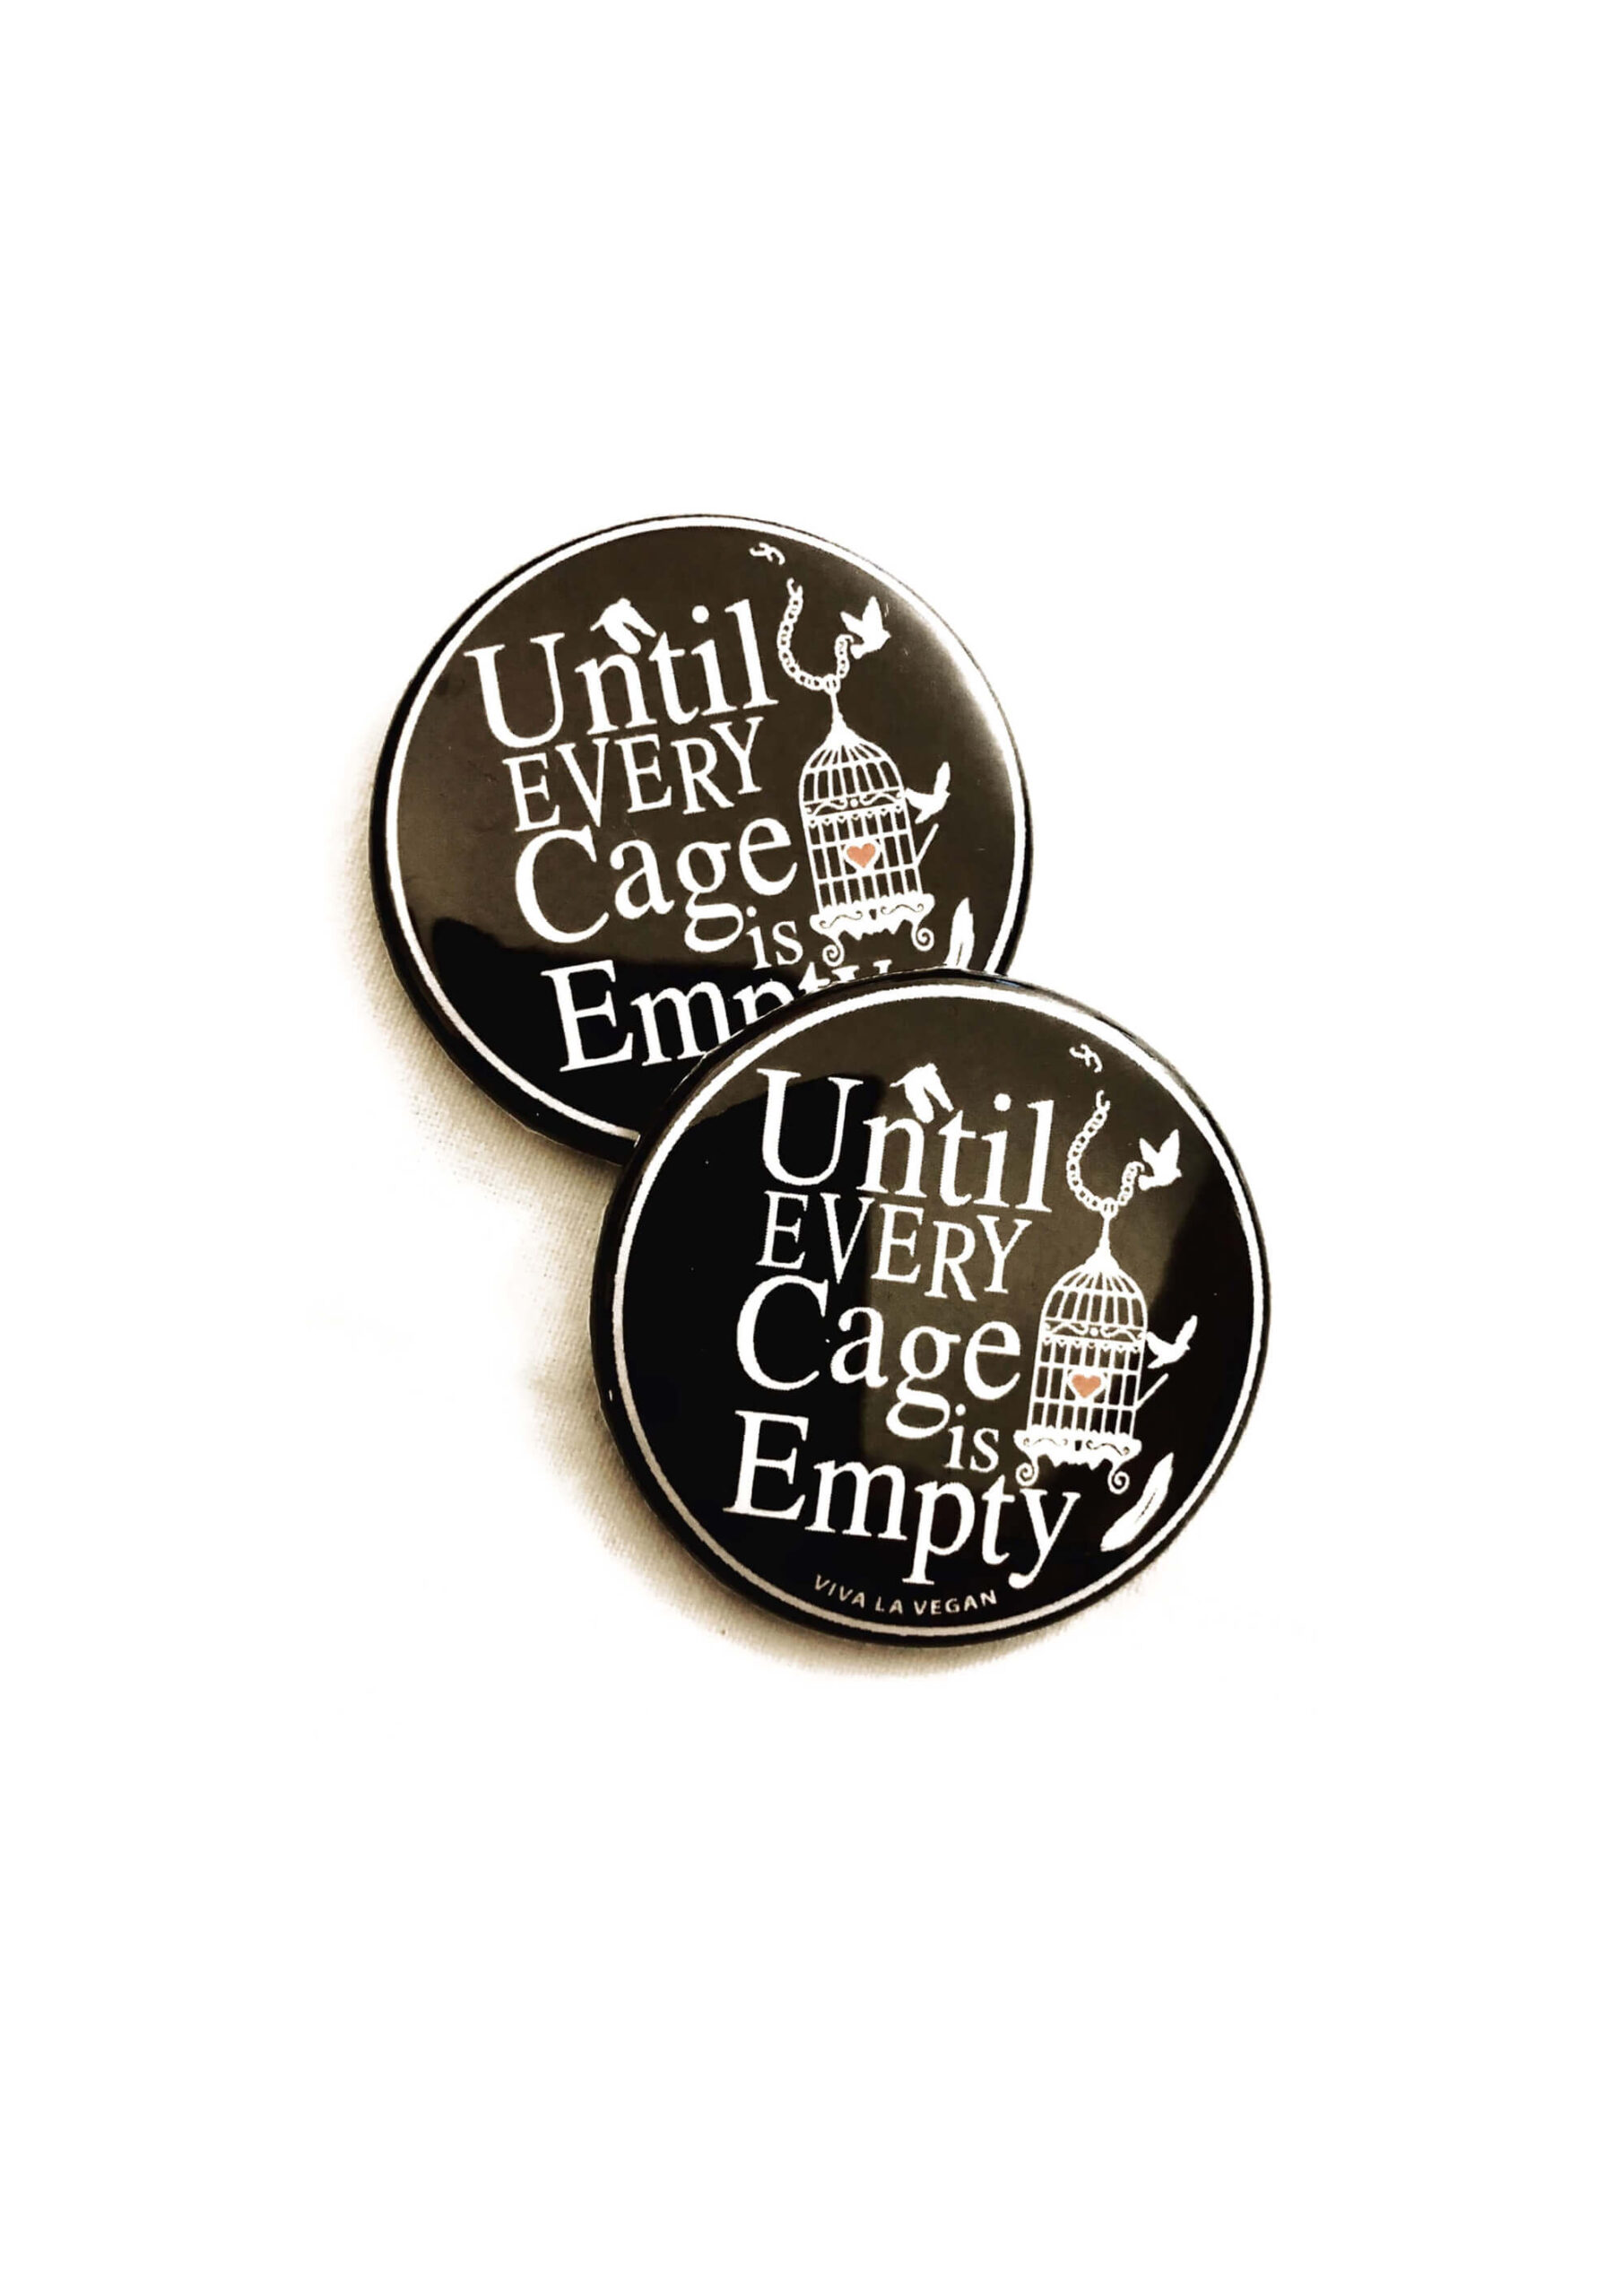 until every cage is empty badge by eco -ethical brand Viva La Vegan